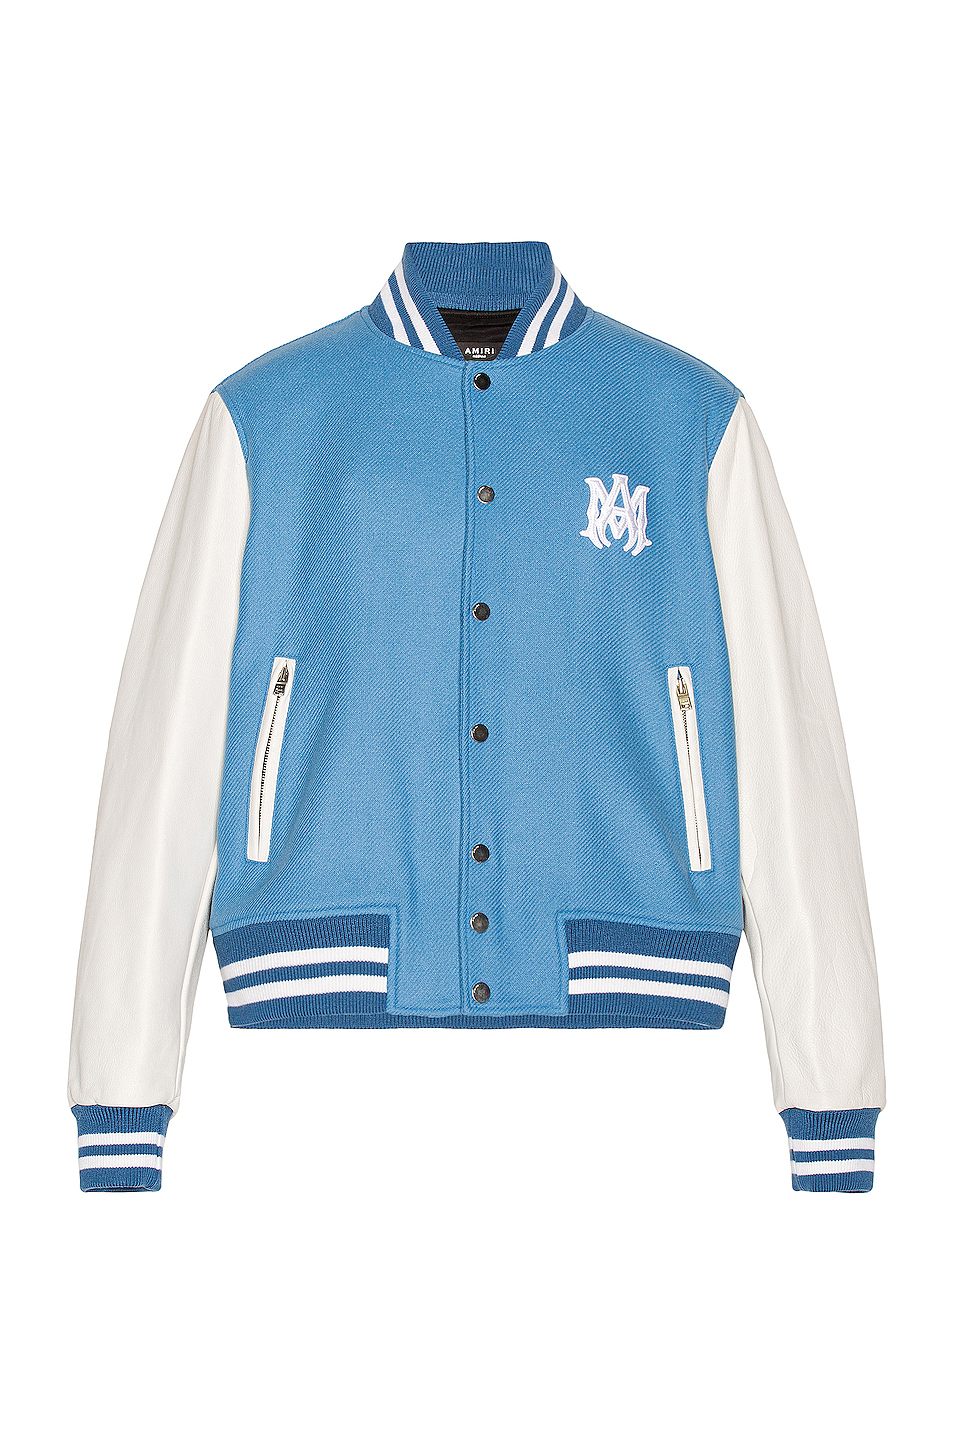 Amiri Letterman Jacket